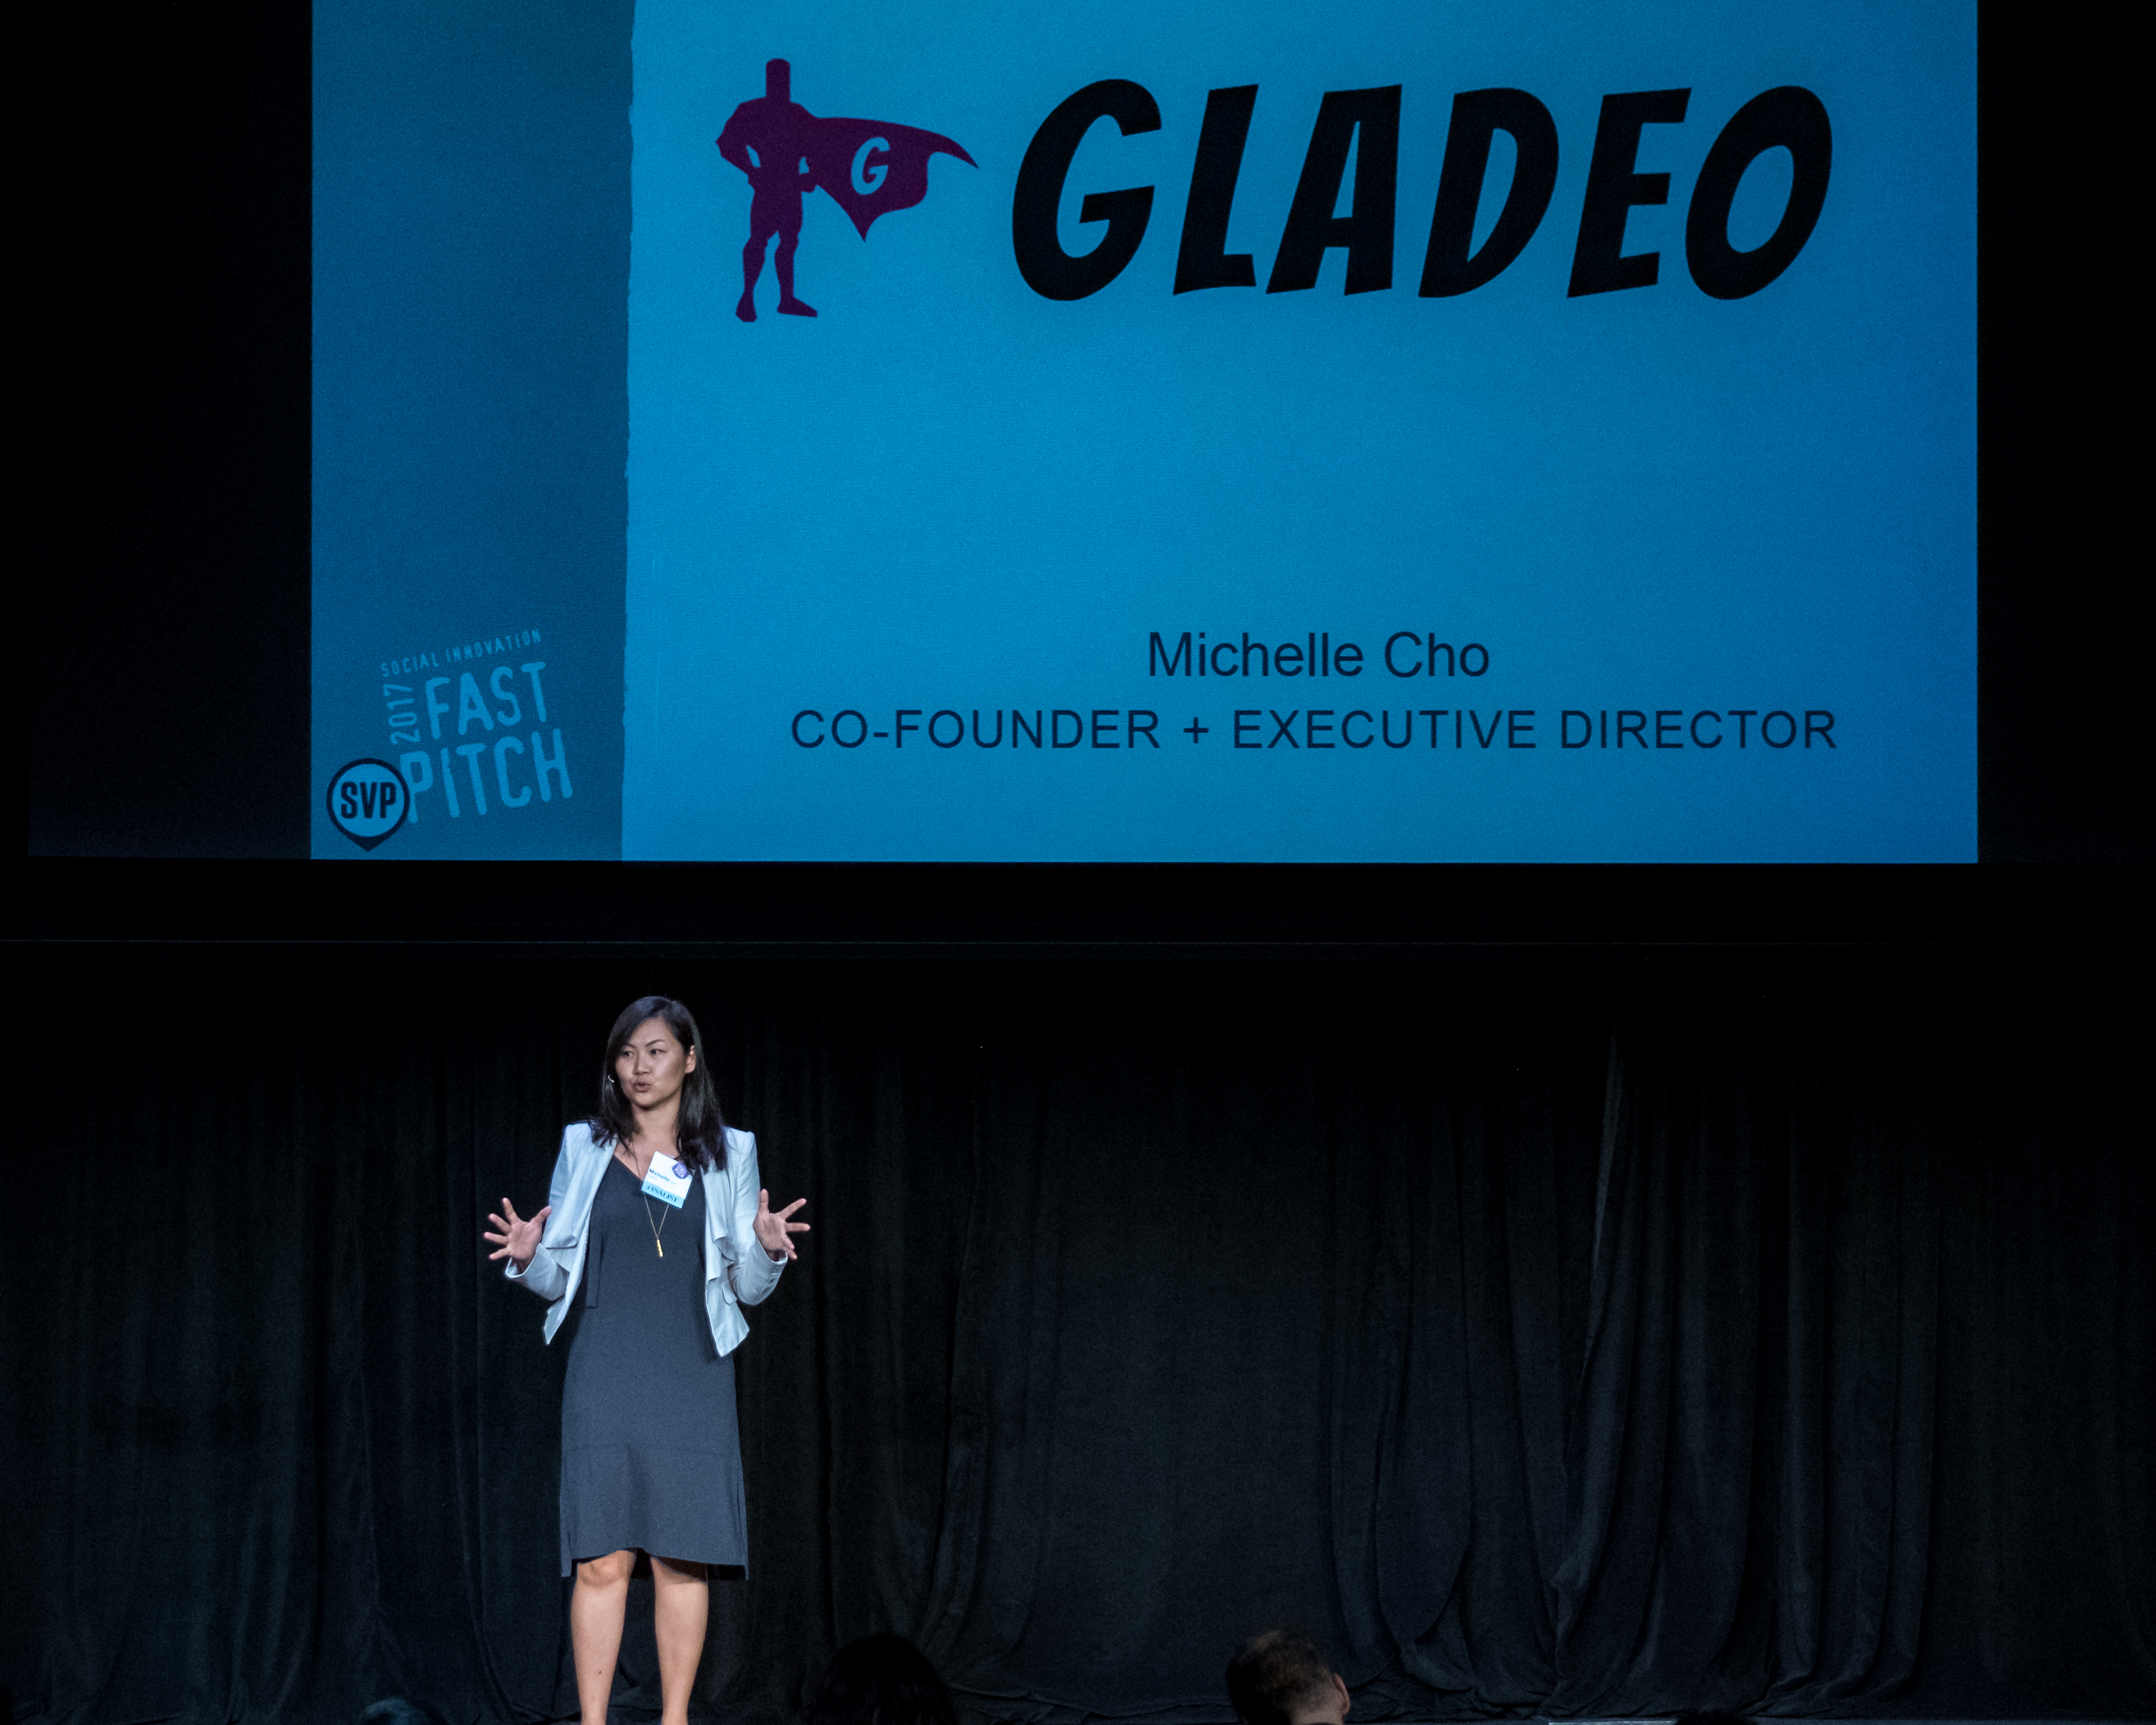 Michelle Cho at the SVPLA fast pitch competition.